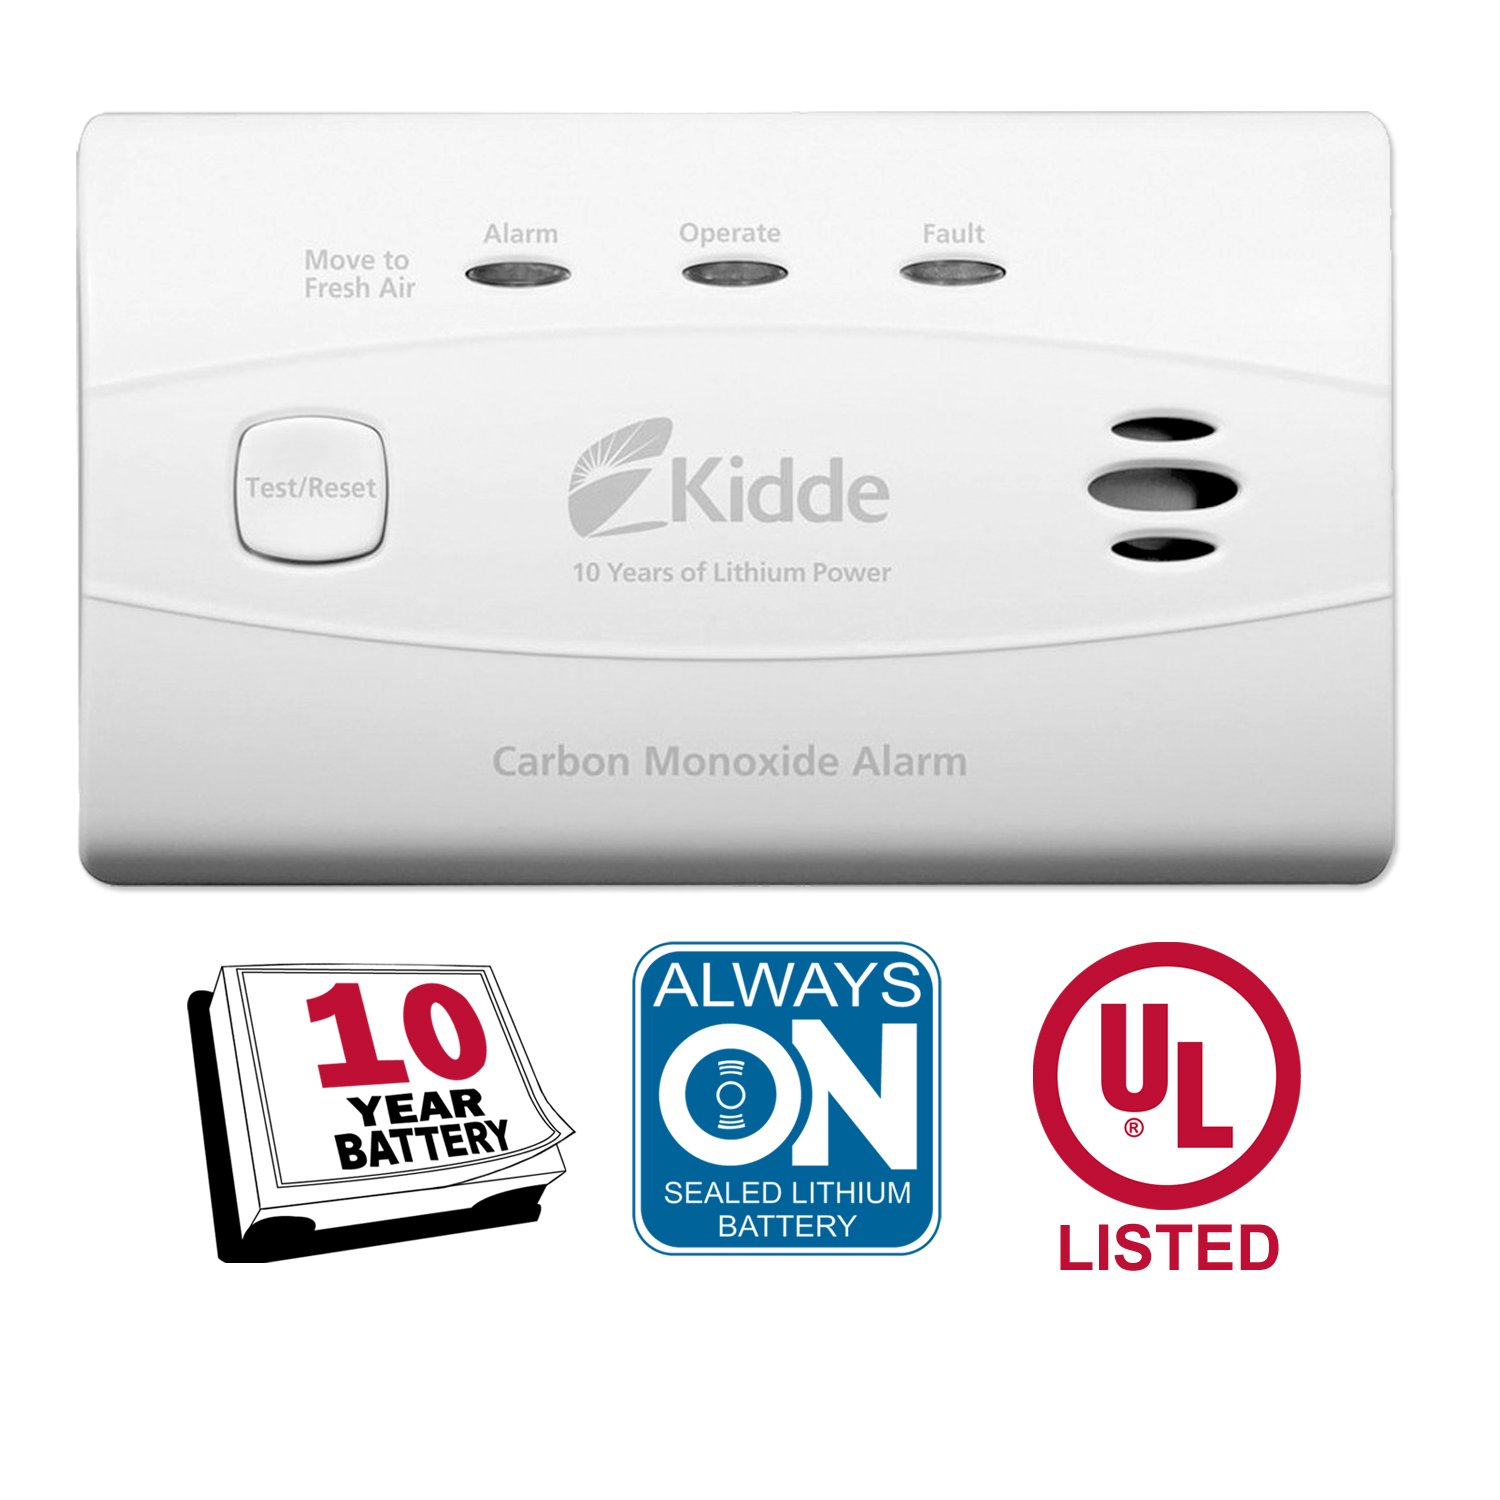 Kidde Worry-Free Carbon Monoxide Detector Alarm with 10 Year Sealed Battery Model C3010